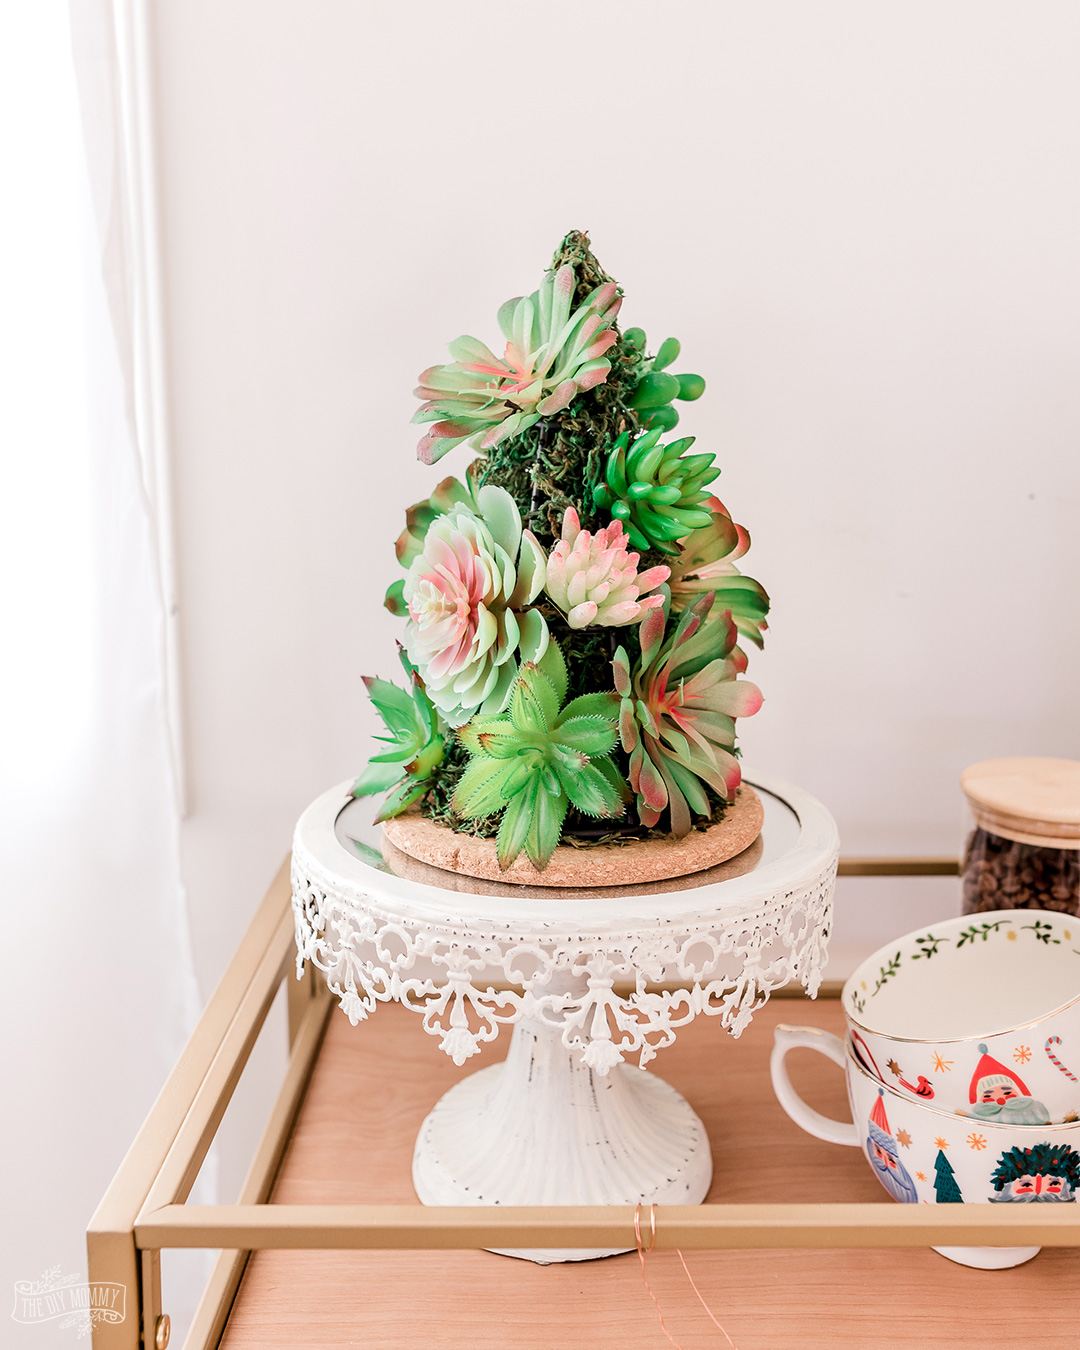 Make a faux succulent Christmas tree tabletop decor with all Dollar Tree supplies!Make a faux succulent Christmas tree tabletop decor with all Dollar Tree supplies!